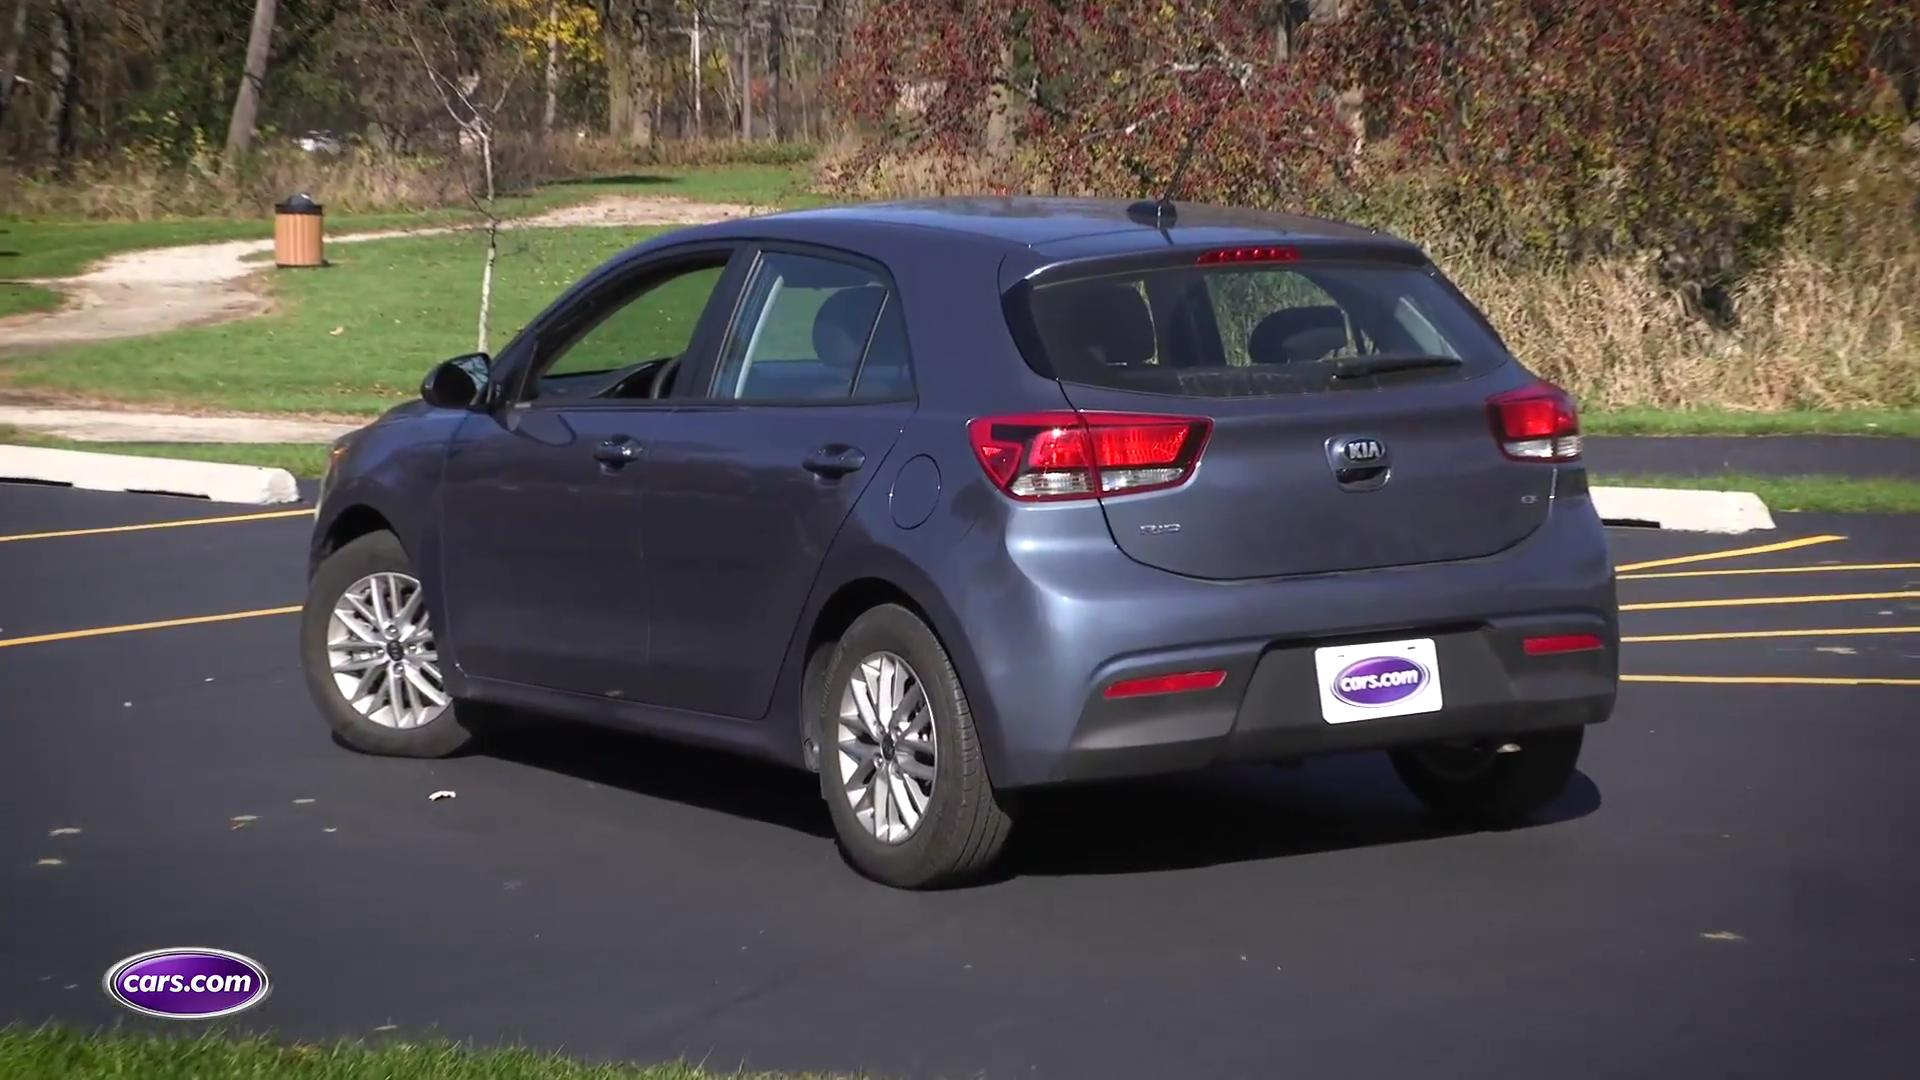 Video: 2018 Kia Rio Review — Cars.com